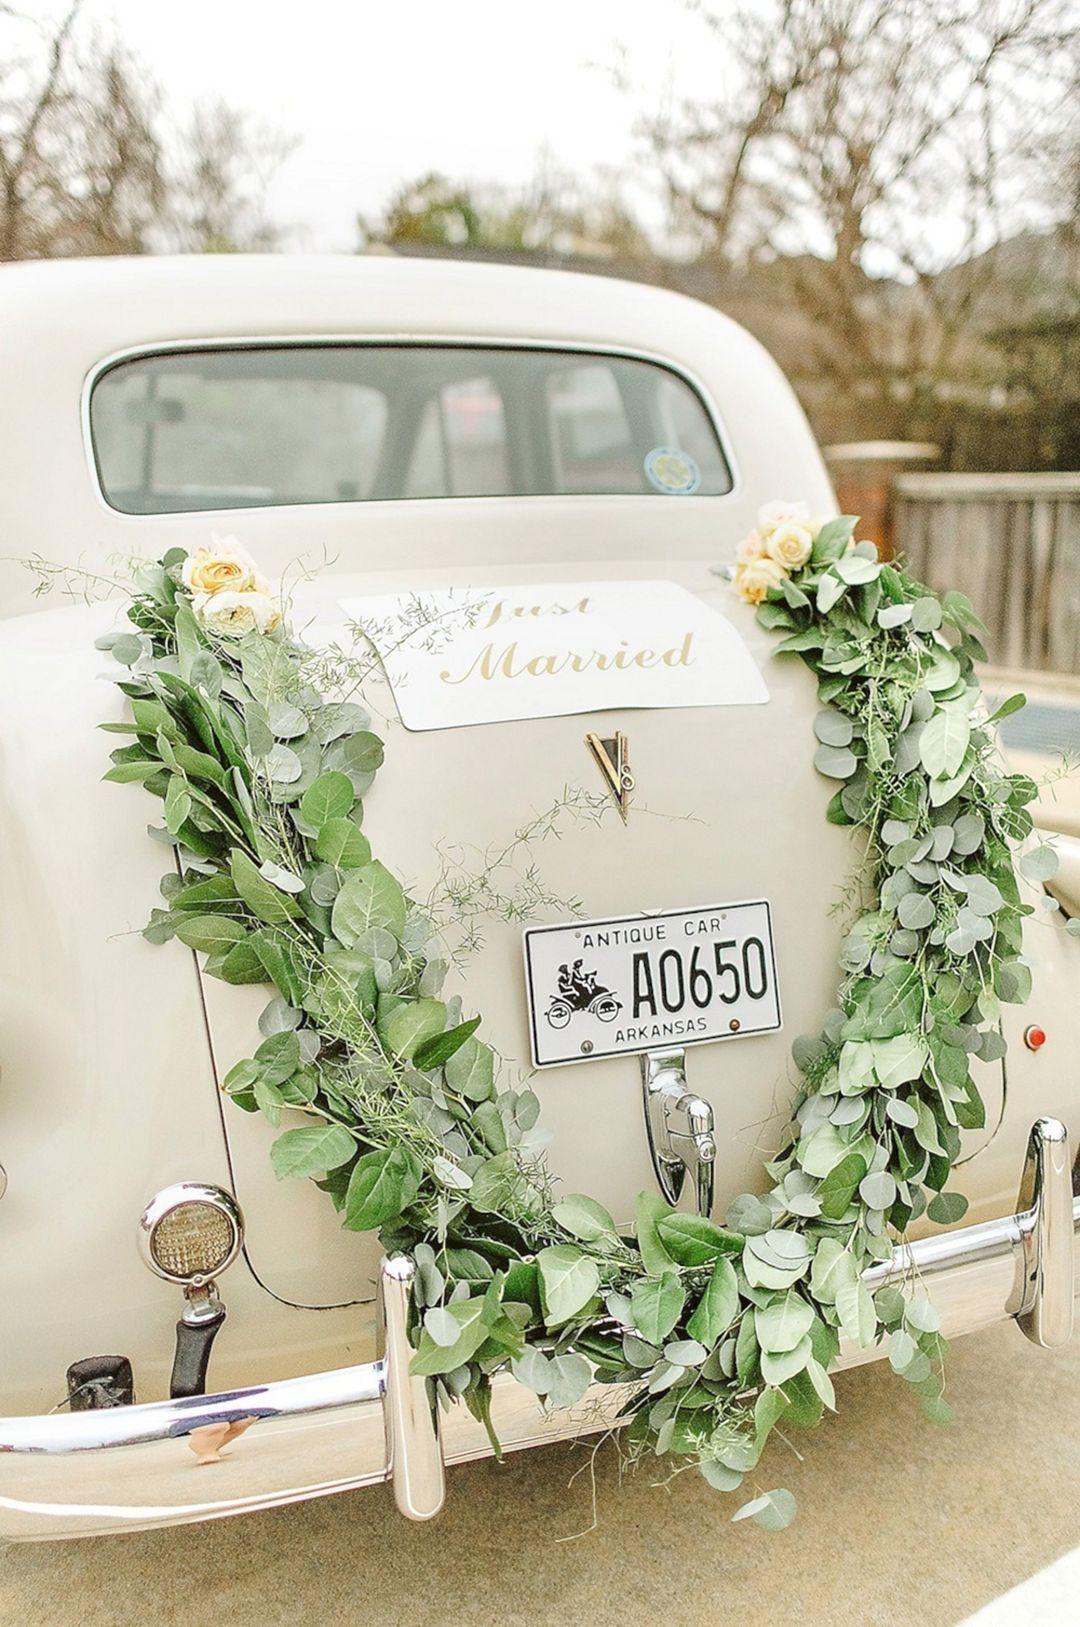 Wedding decorations car   Awesome Wedding Car Decorations Ideas  Wedding car decorations